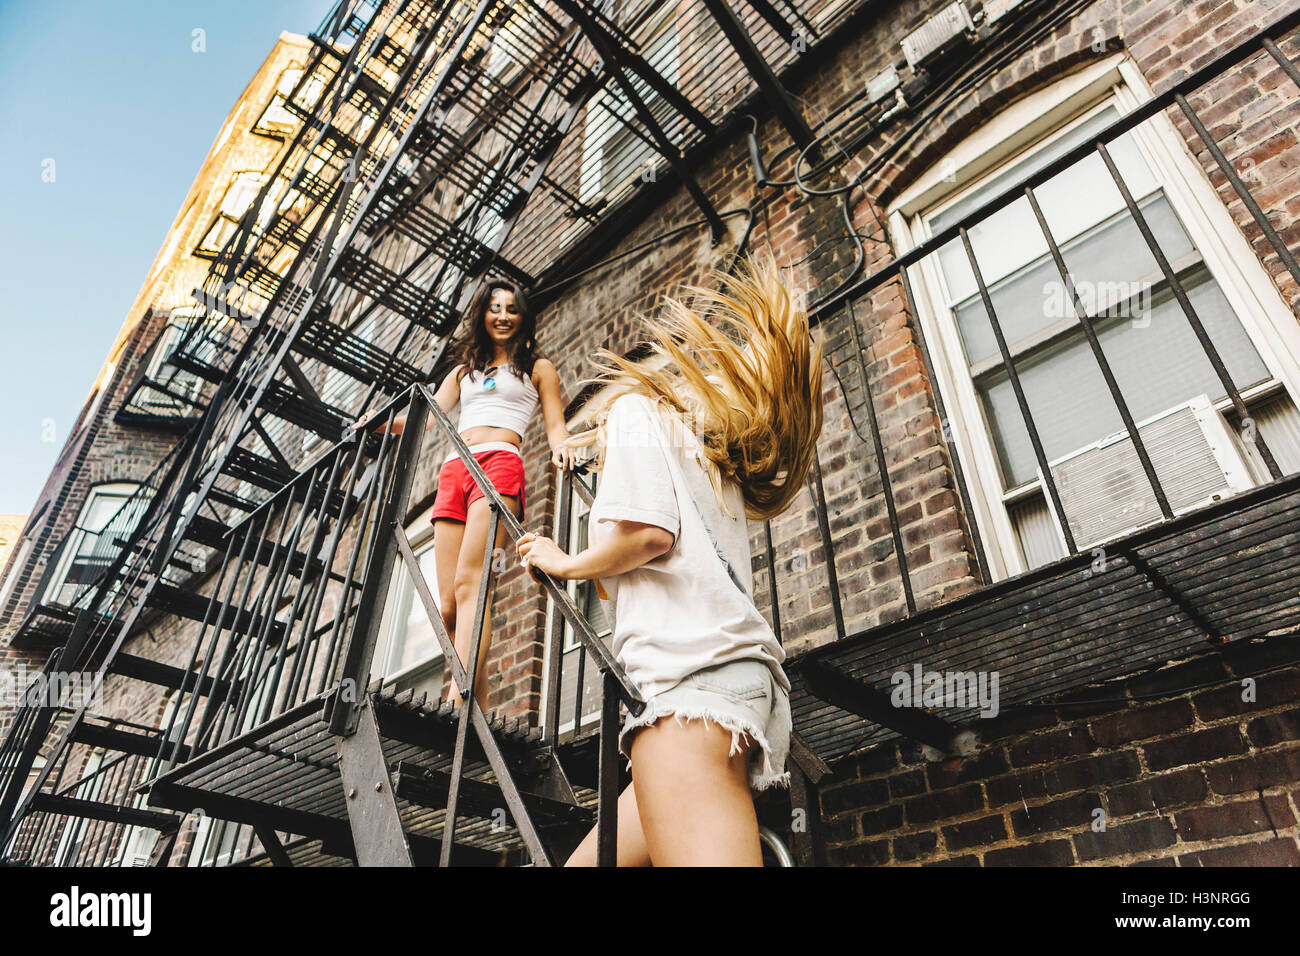 Woman Climbing Fire Escape Ladder Of Apartment Building Boston